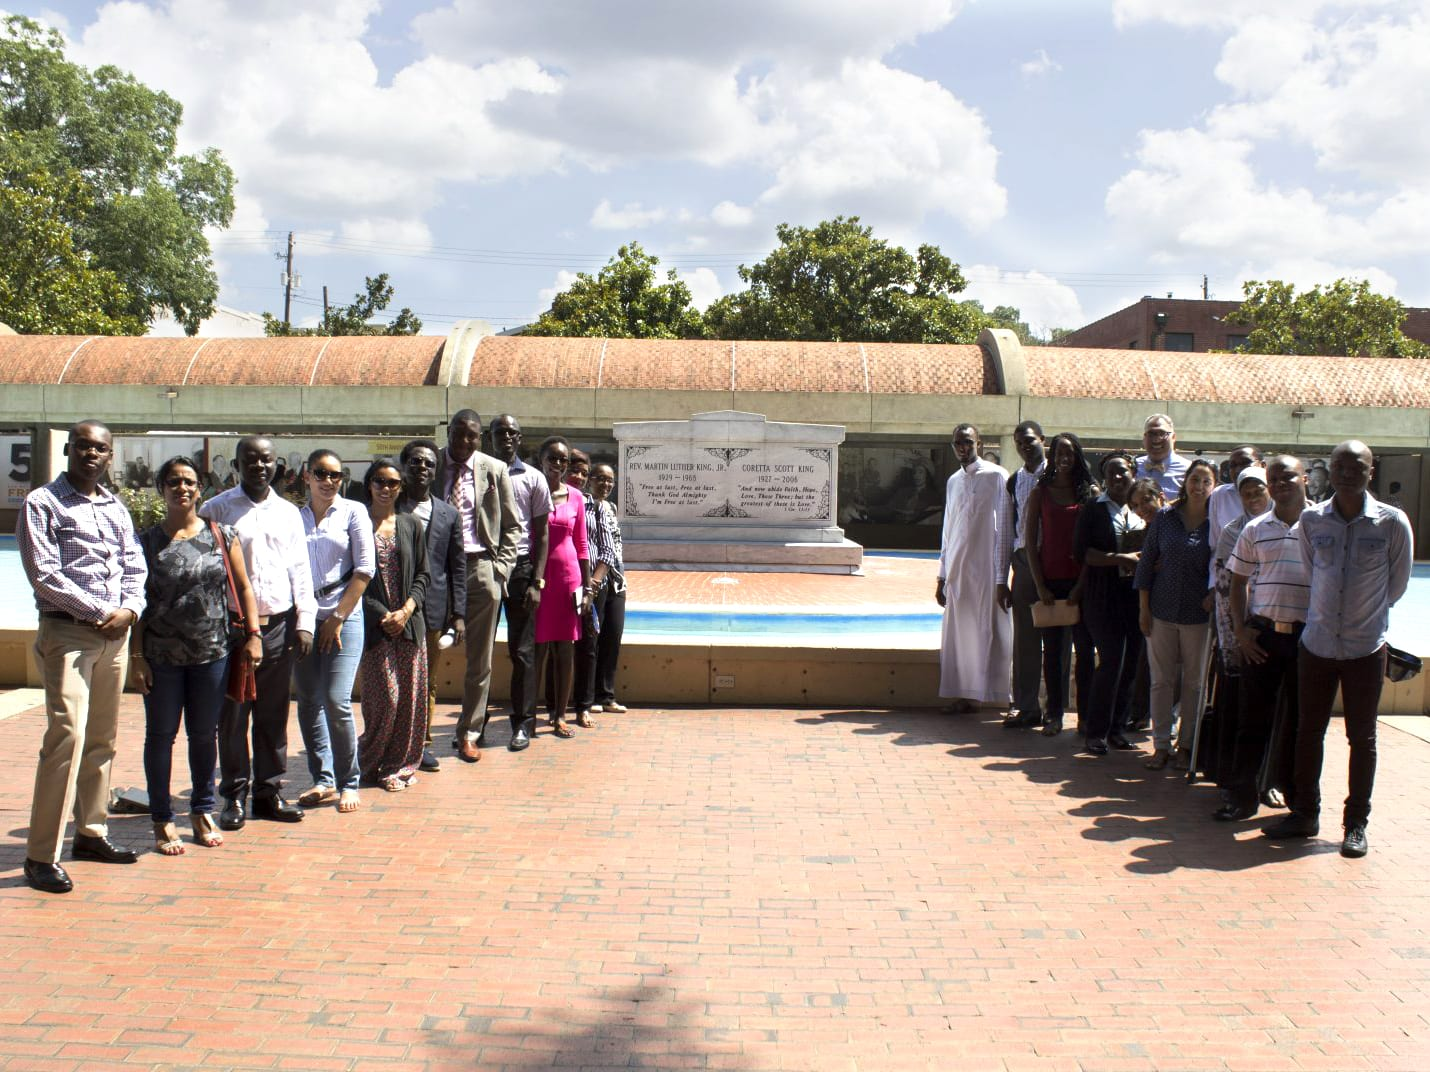 Mandela Washington Fellows tour the Martin Luther King, Jr. Center as part of the Young African Leaders Initiative